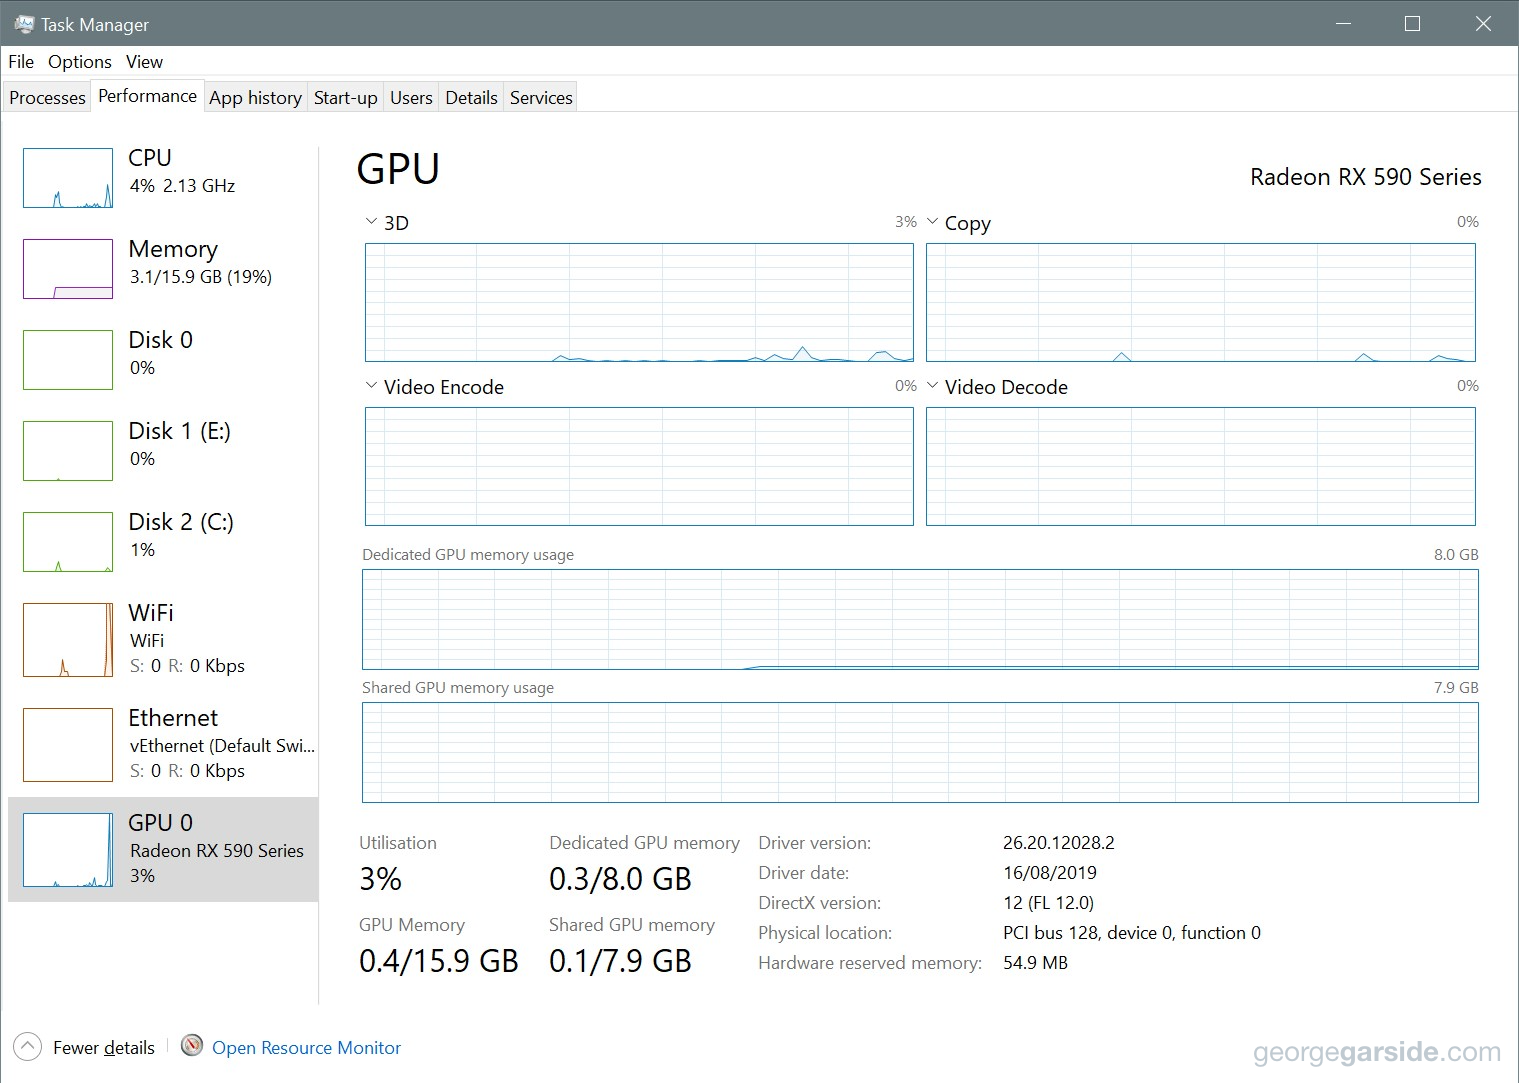 Task Manager showing eGPU